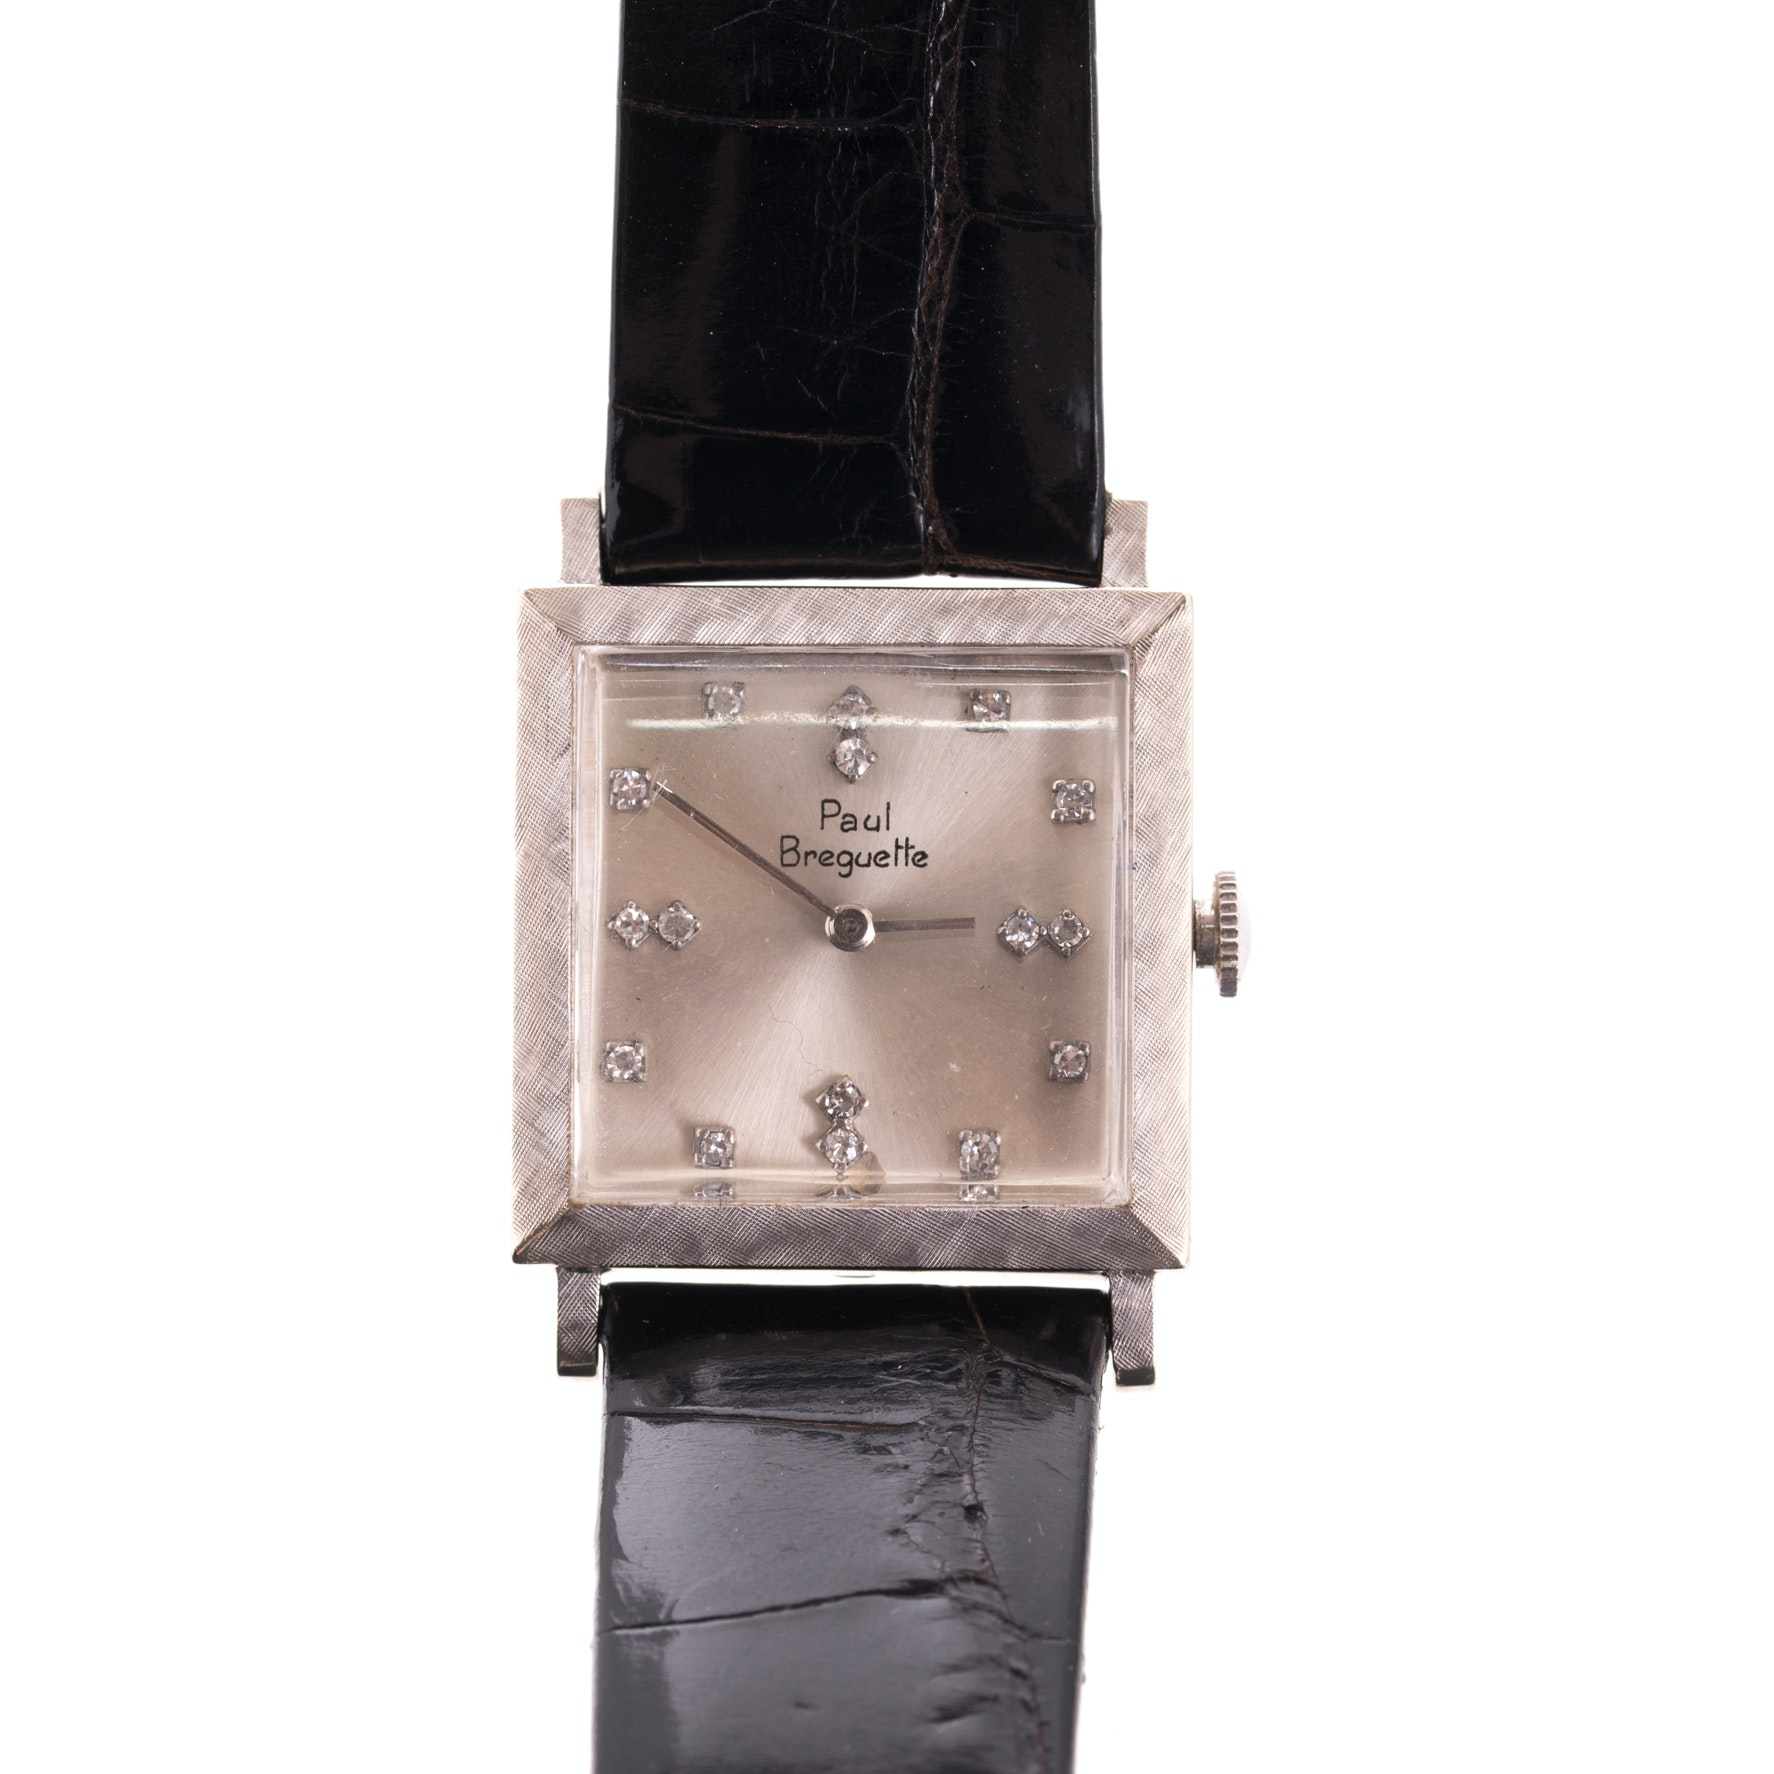 Paul Breguette 14K White Gold and Diamond Wristwatch